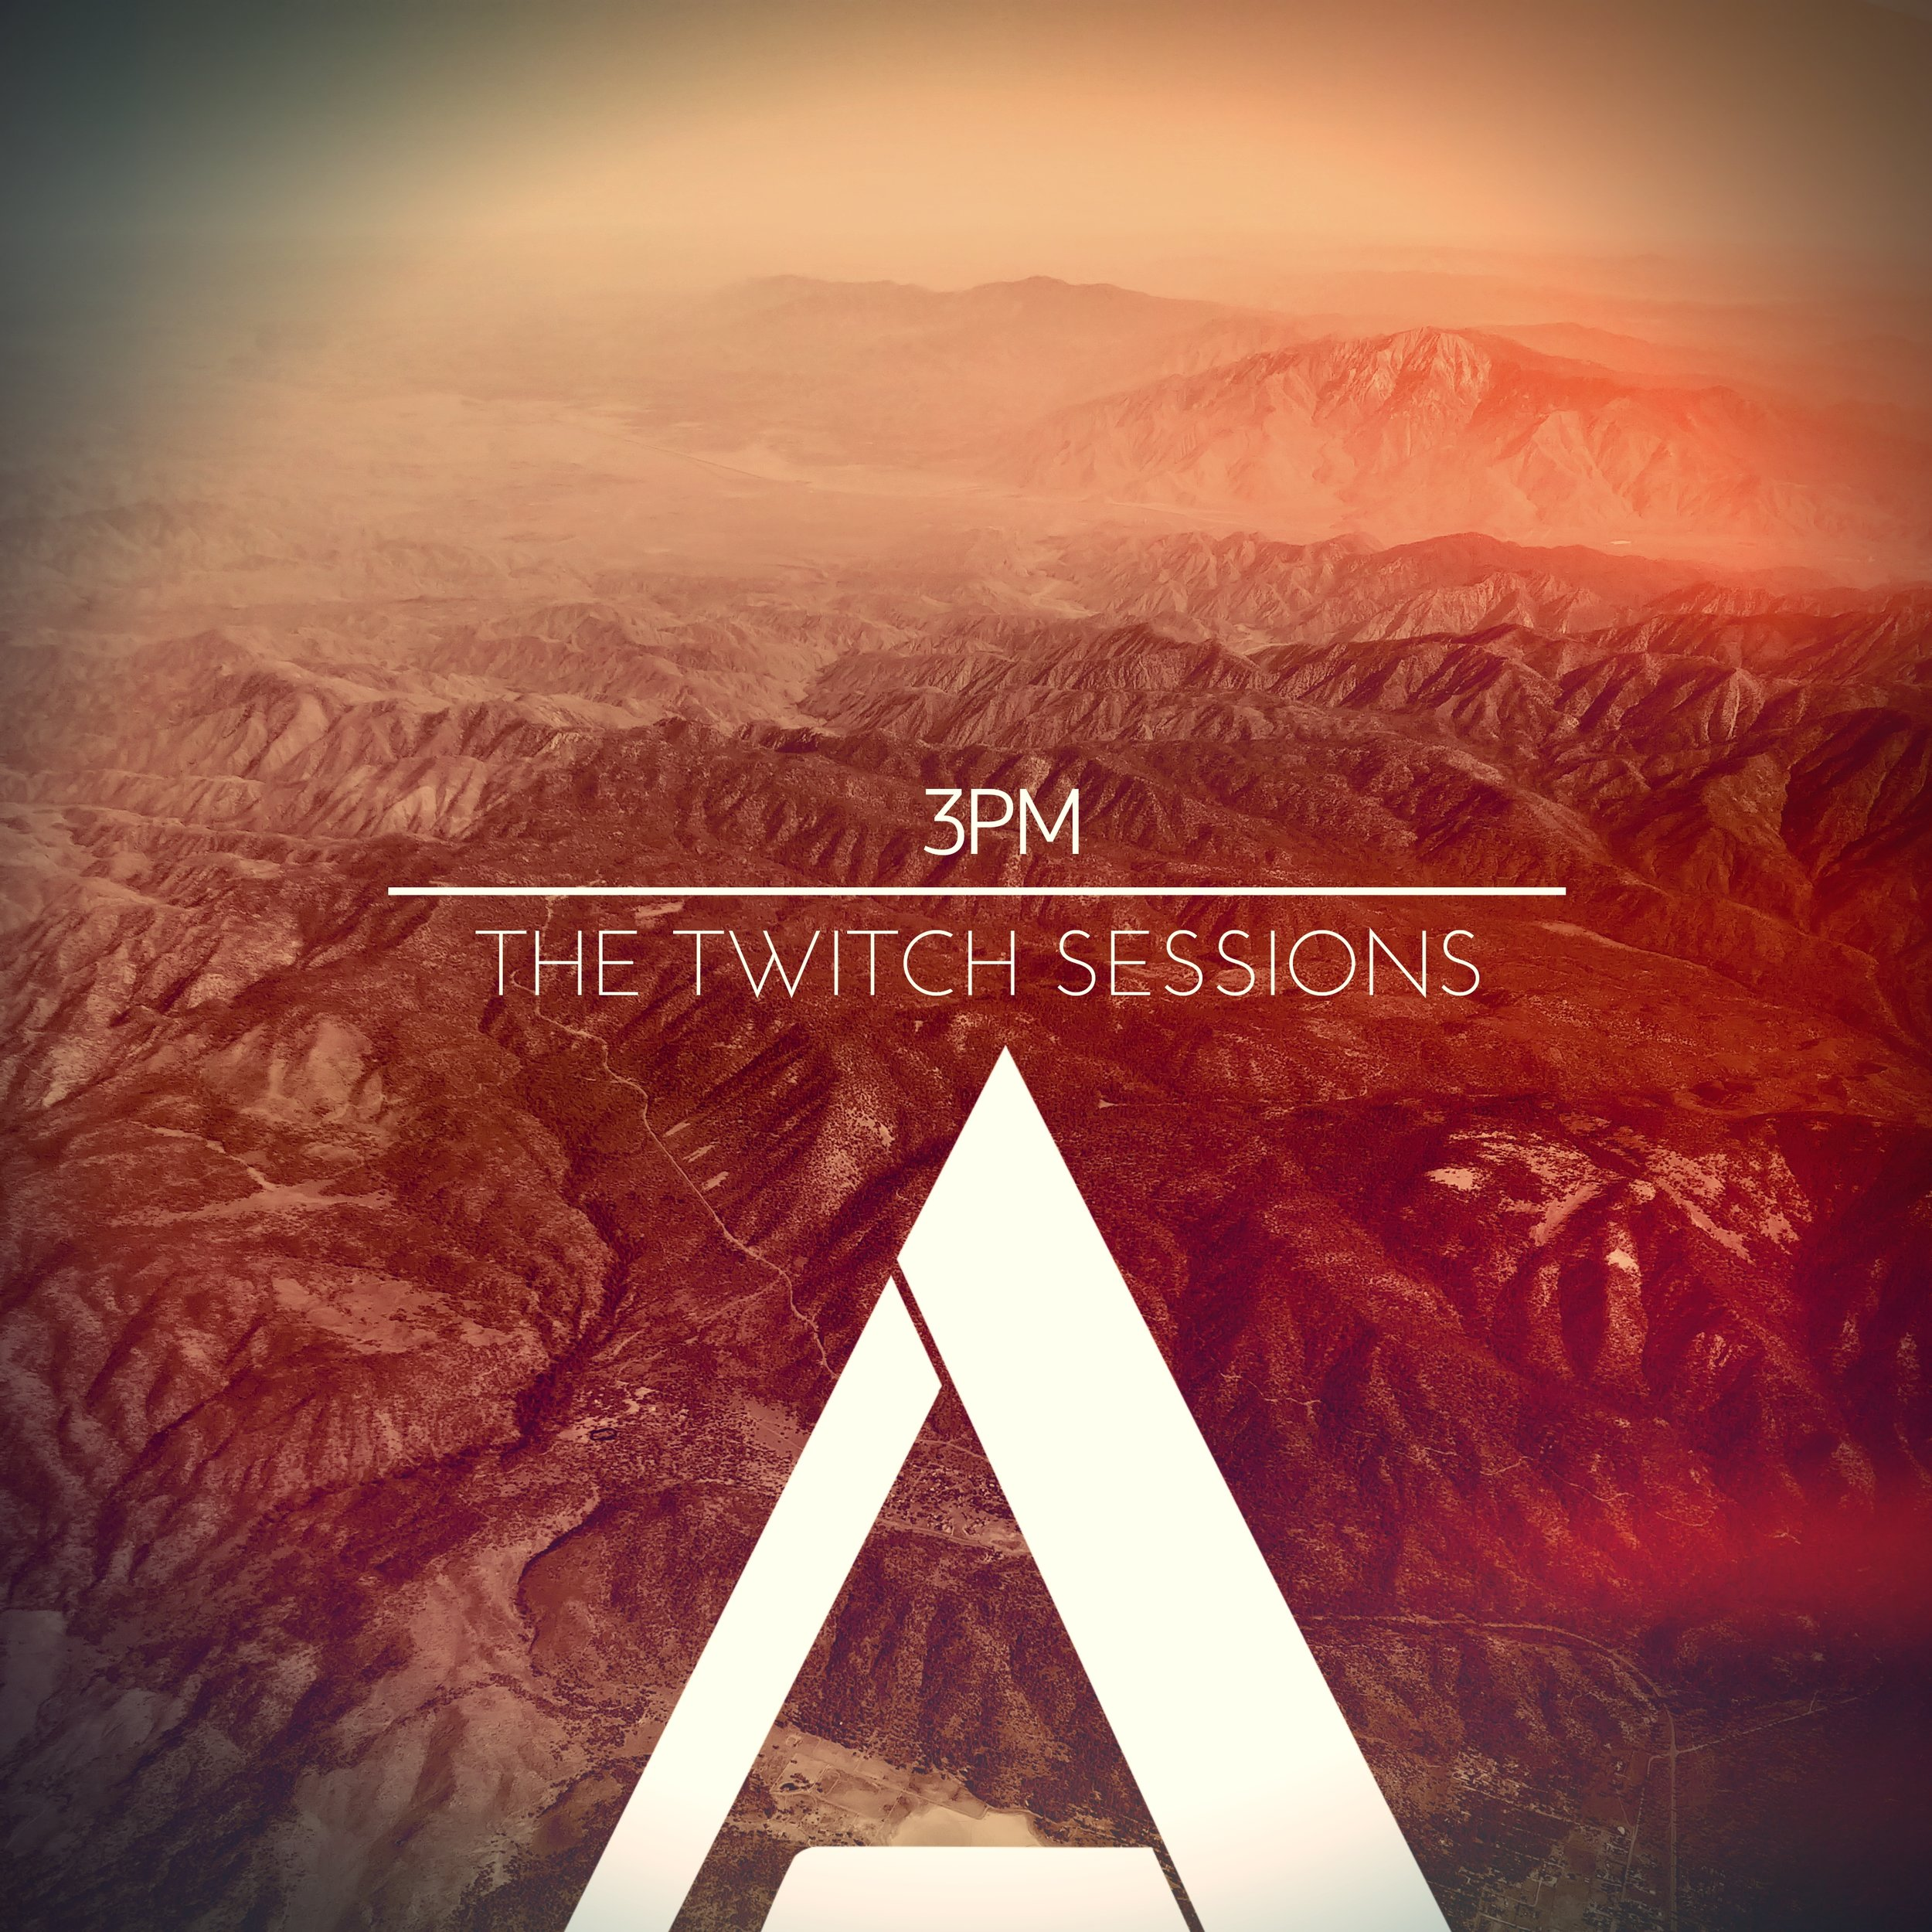 3PM - THE TWITCH SESSIONS - NEW ALBUM COMING Q4 2018.